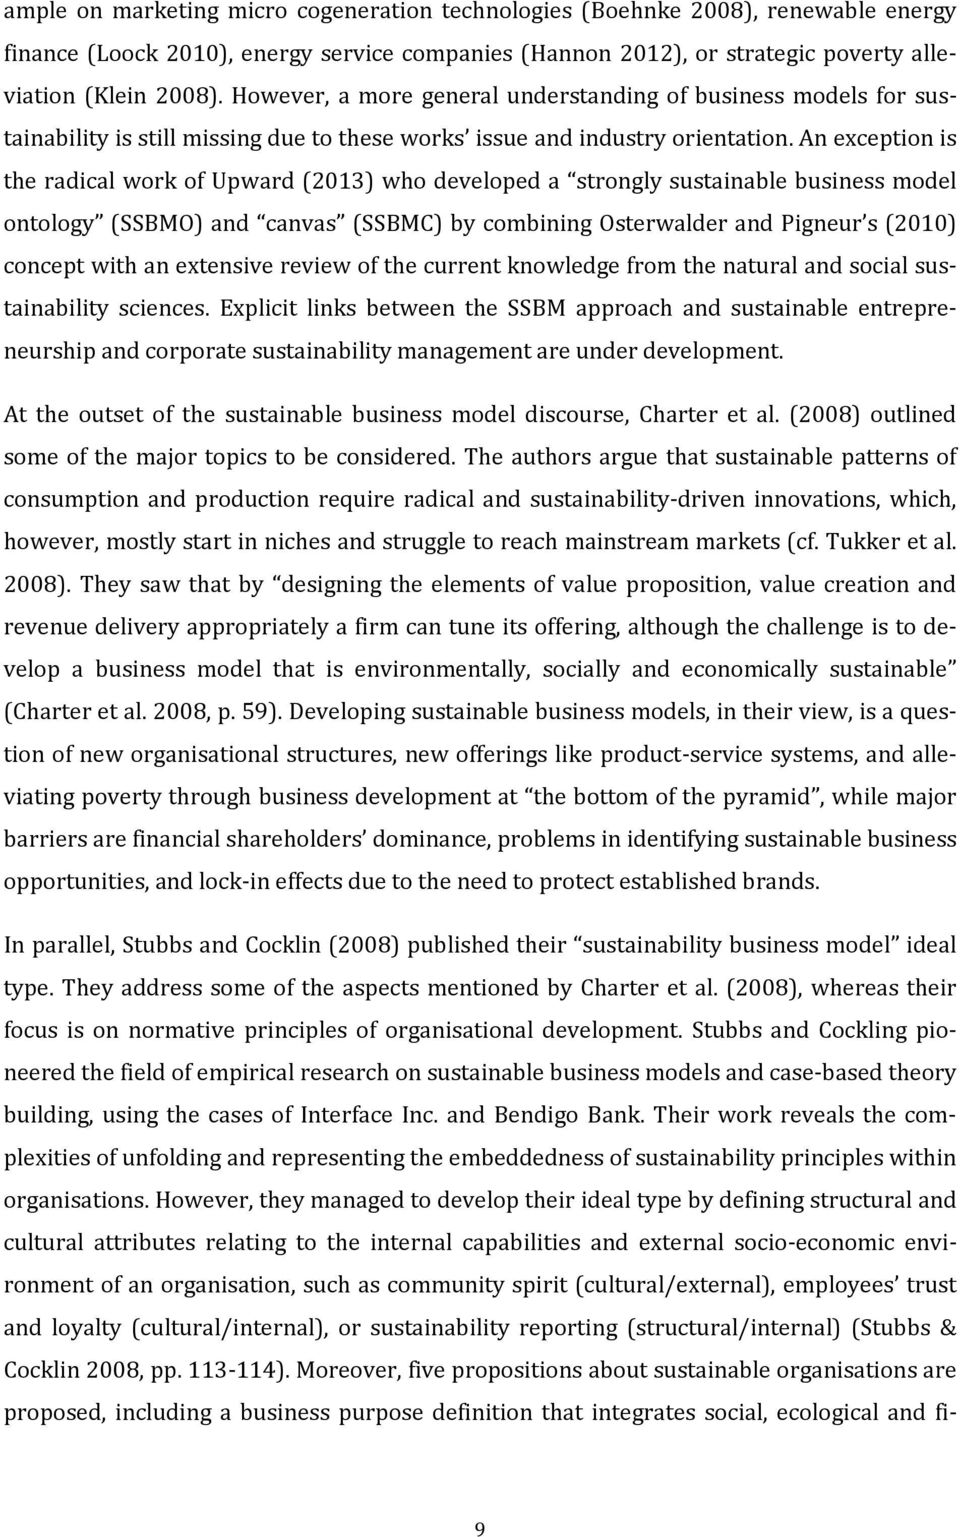 An exception is the radical work of Upward (2013) who developed a strongly sustainable business model ontology (SSBMO) and canvas (SSBMC) by combining Osterwalder and Pigneur s (2010) concept with an